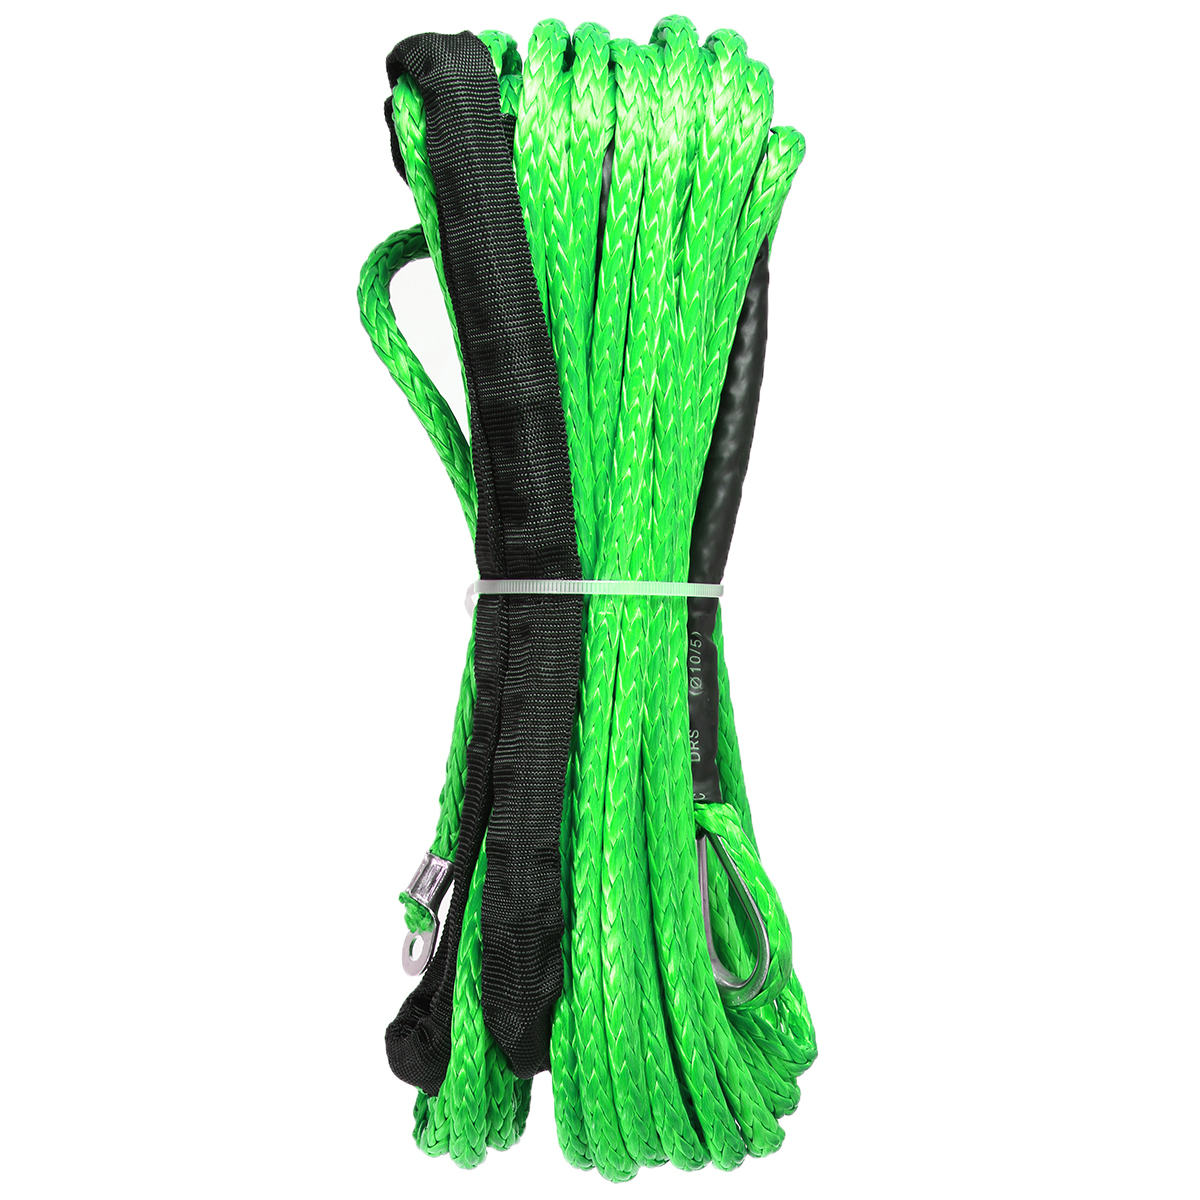 Image 5 - 15M 5500lbs Synthetic Winch Rope Cable Line Towing Accessories for ATV UTV Off Road Green-in Towing Ropes from Automobiles & Motorcycles